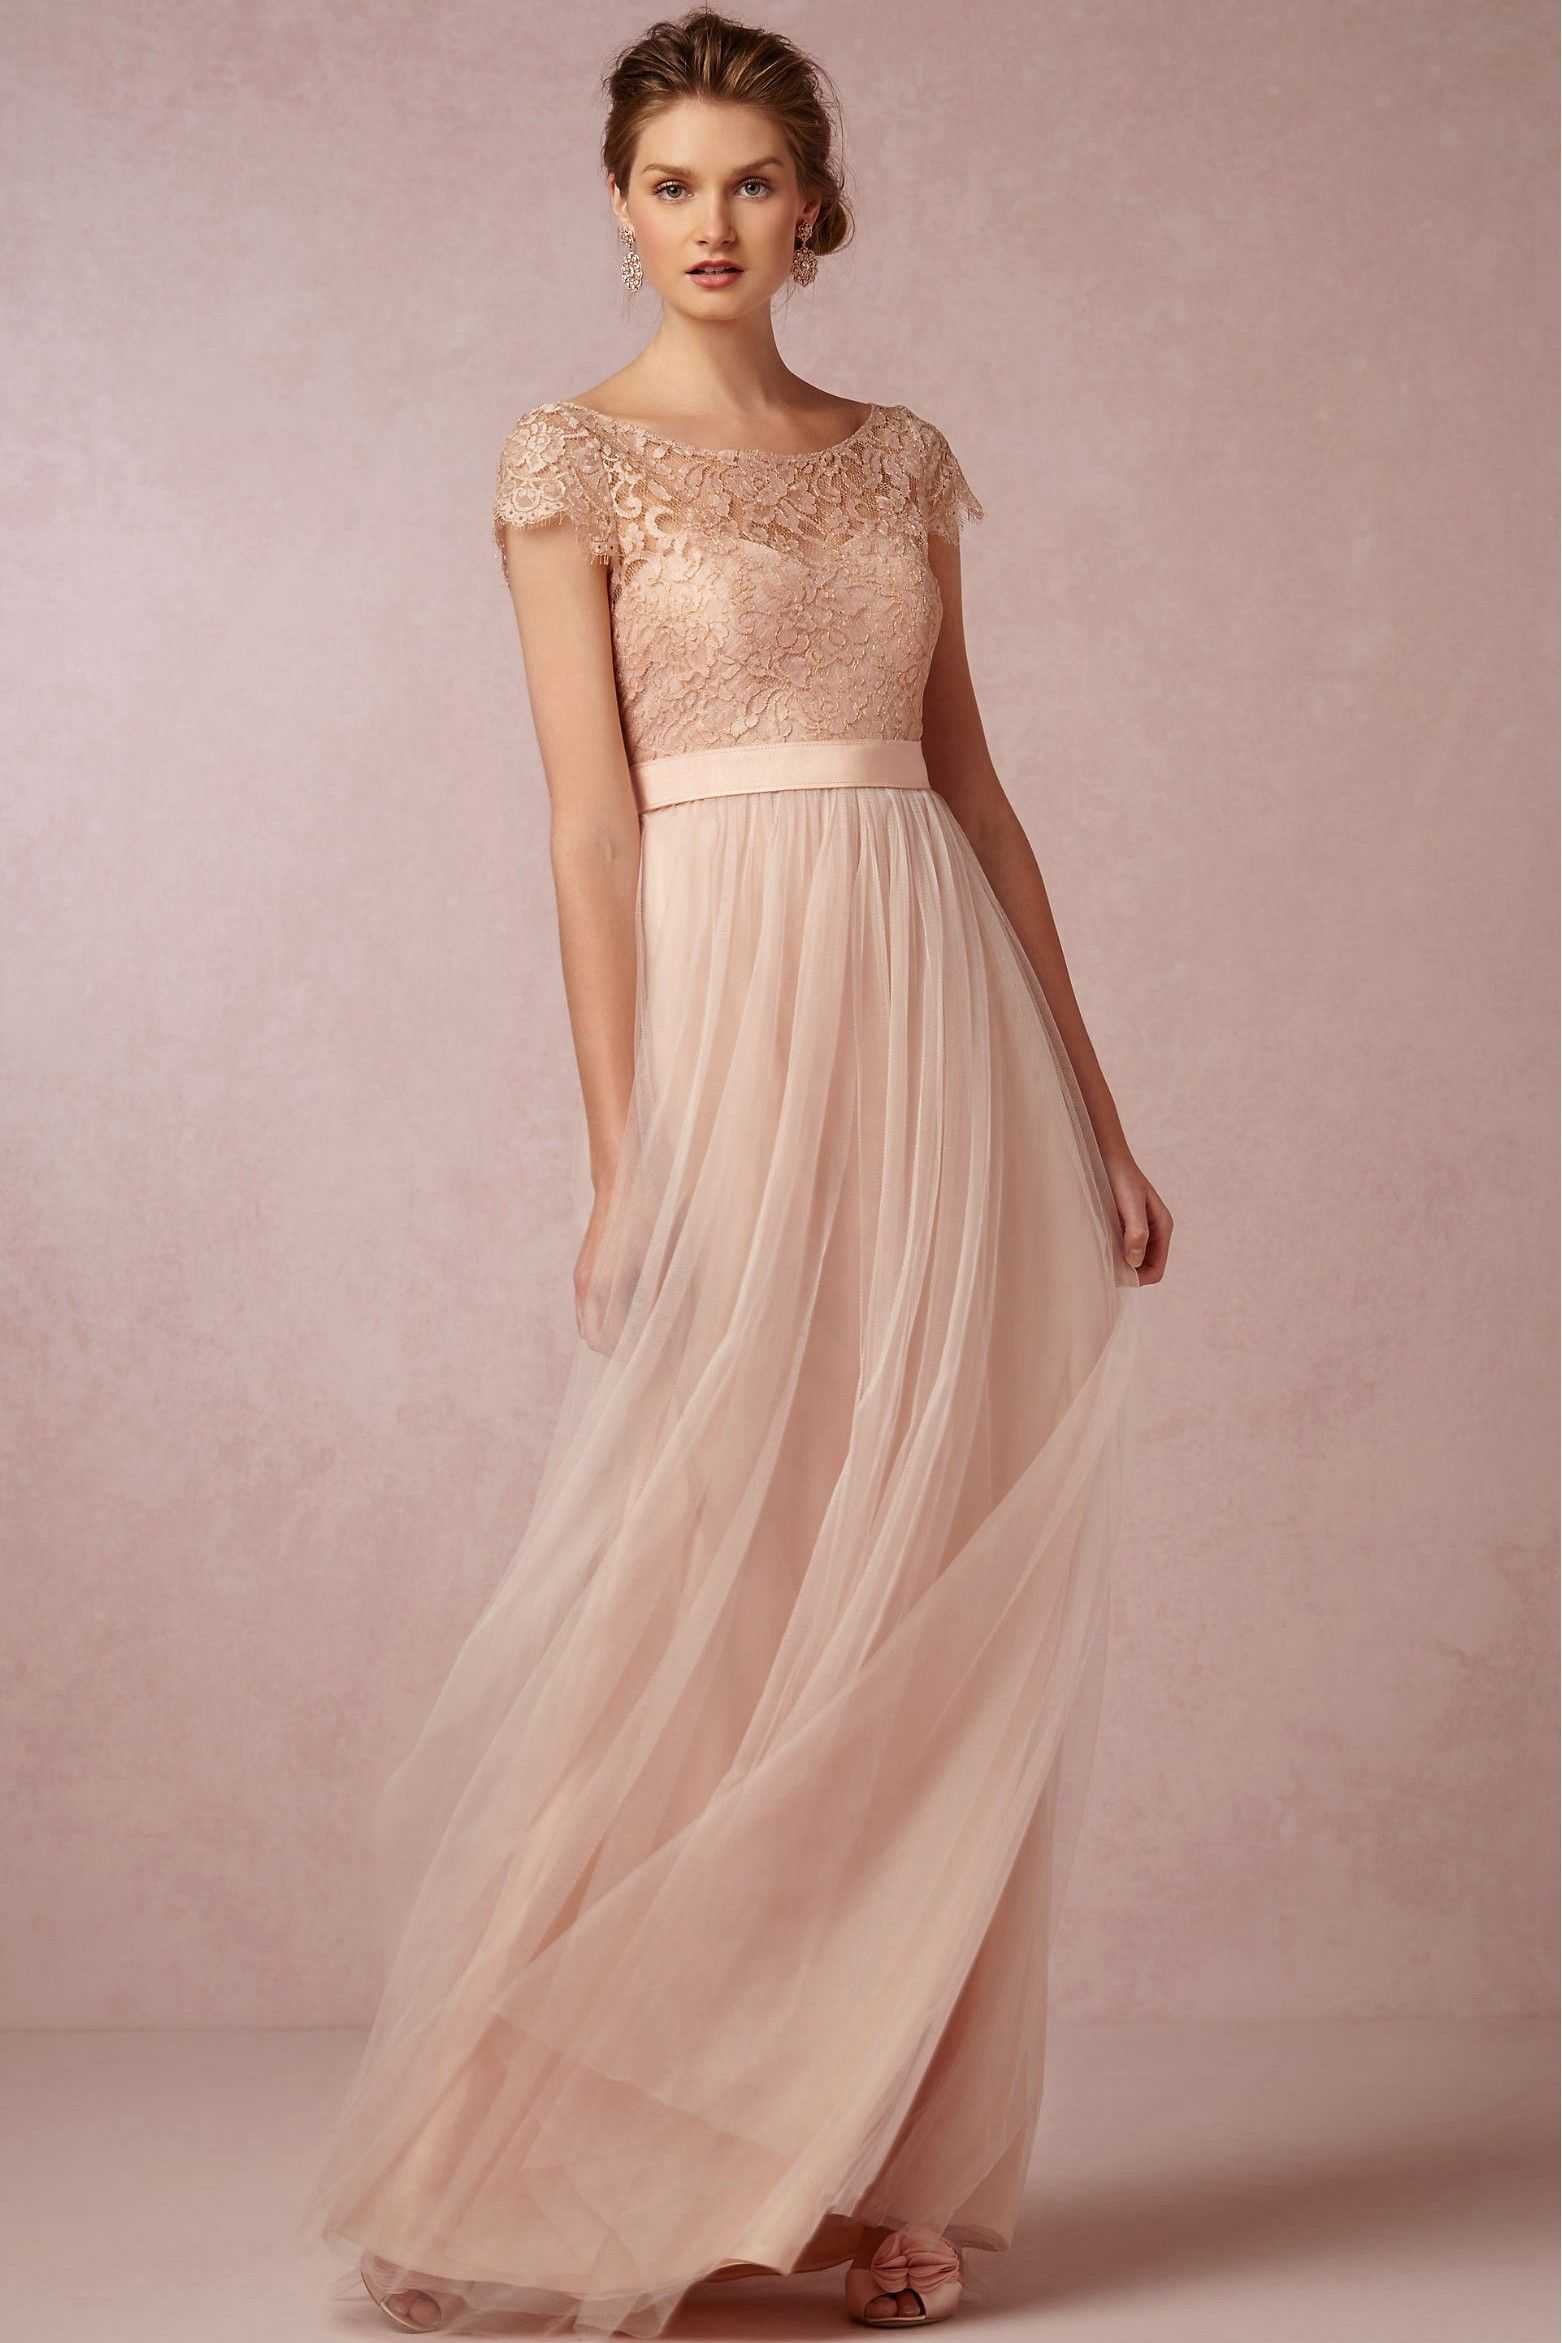 Affordable Price Of A Line Scoop Floor Length Tulle Fabric Pink Bridesmaid Cap Sleeve Bridesmaid Dress Elegant Bridesmaid Dresses Bridesmaid Dresses Long Lace